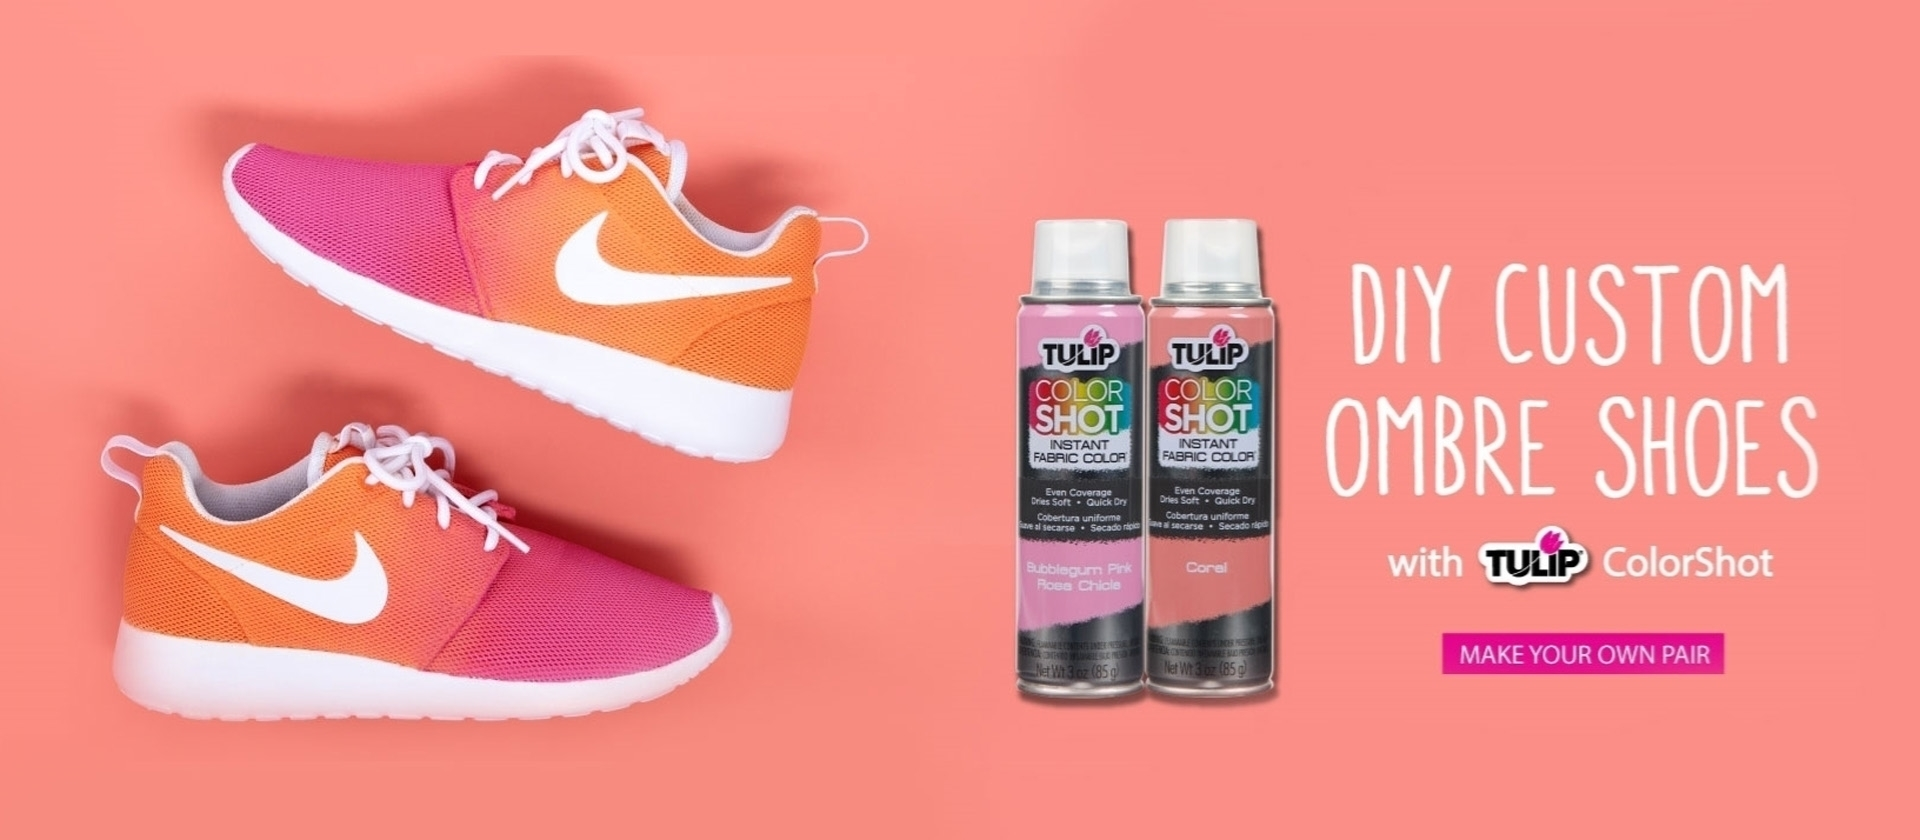 Custom Ombre Shoes DIY with Colorshot